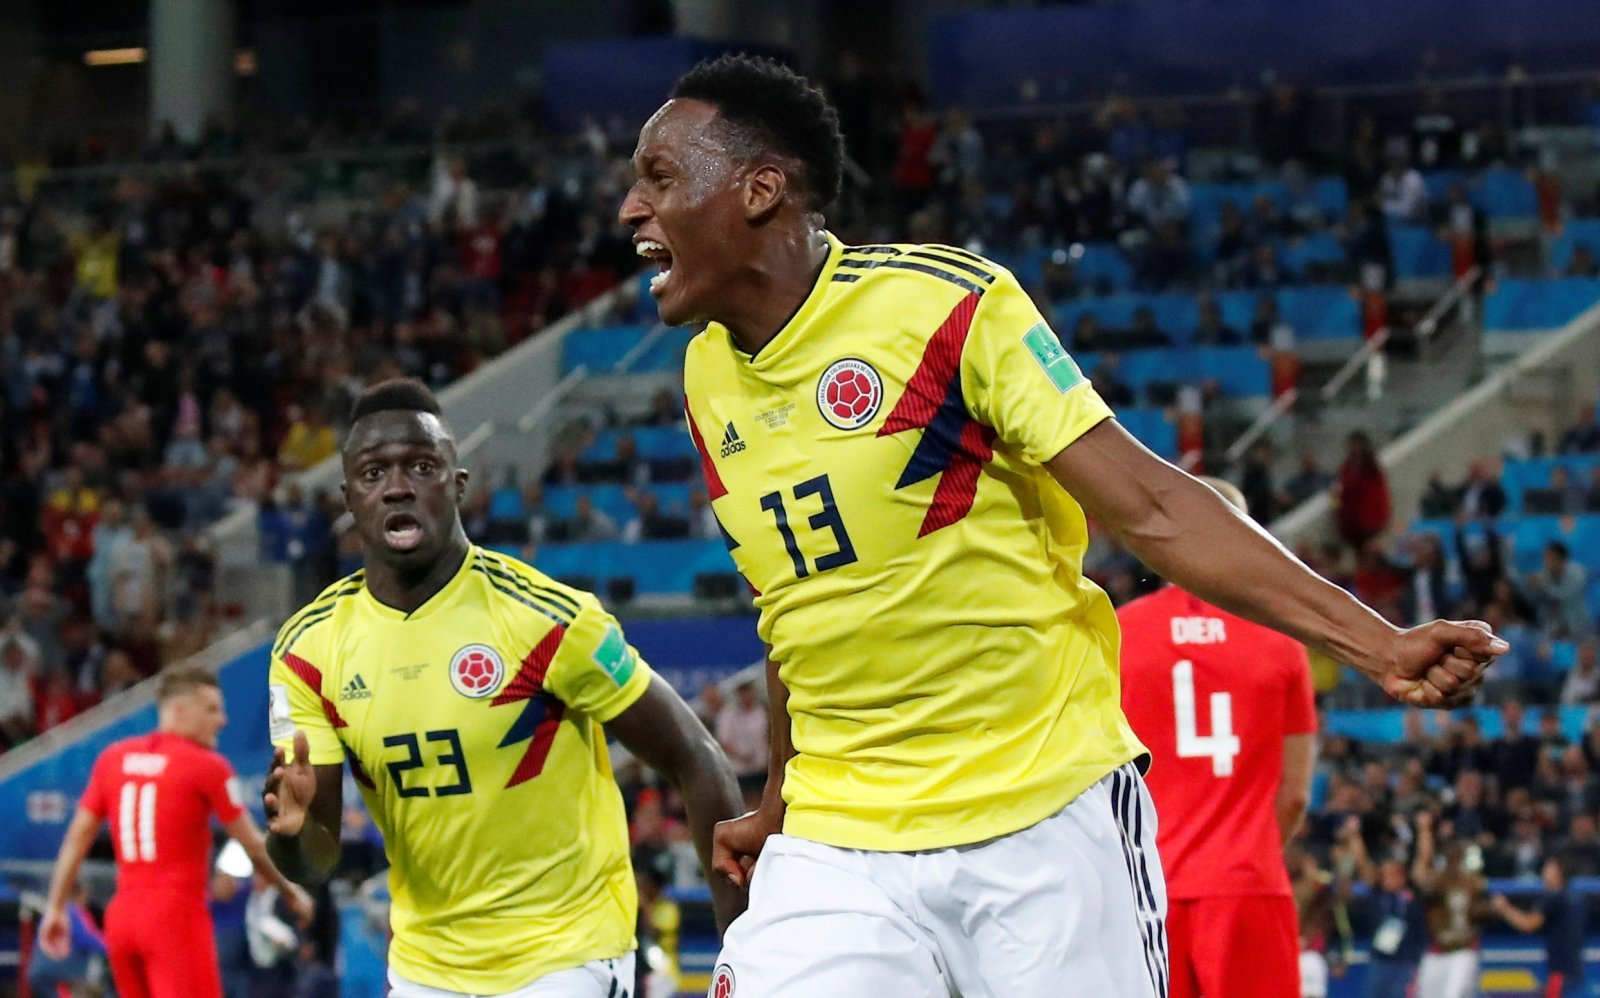 Wolves could make another transfer coup by signing Yerry Mina